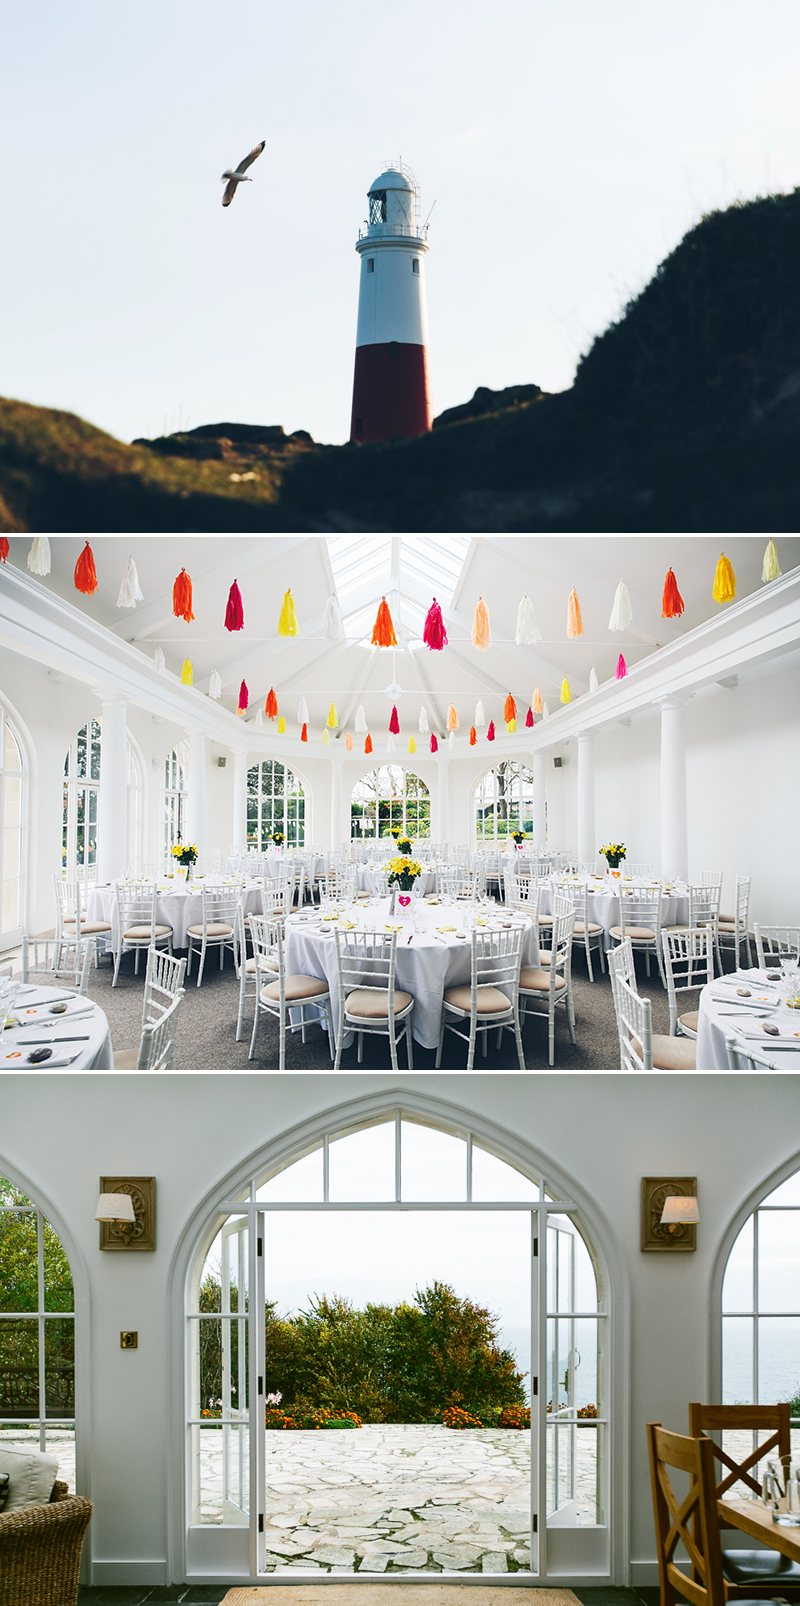 dorset-wedding-venue-20-percent-spring-offer-the-penn-coco-wedding-venues-layer-3